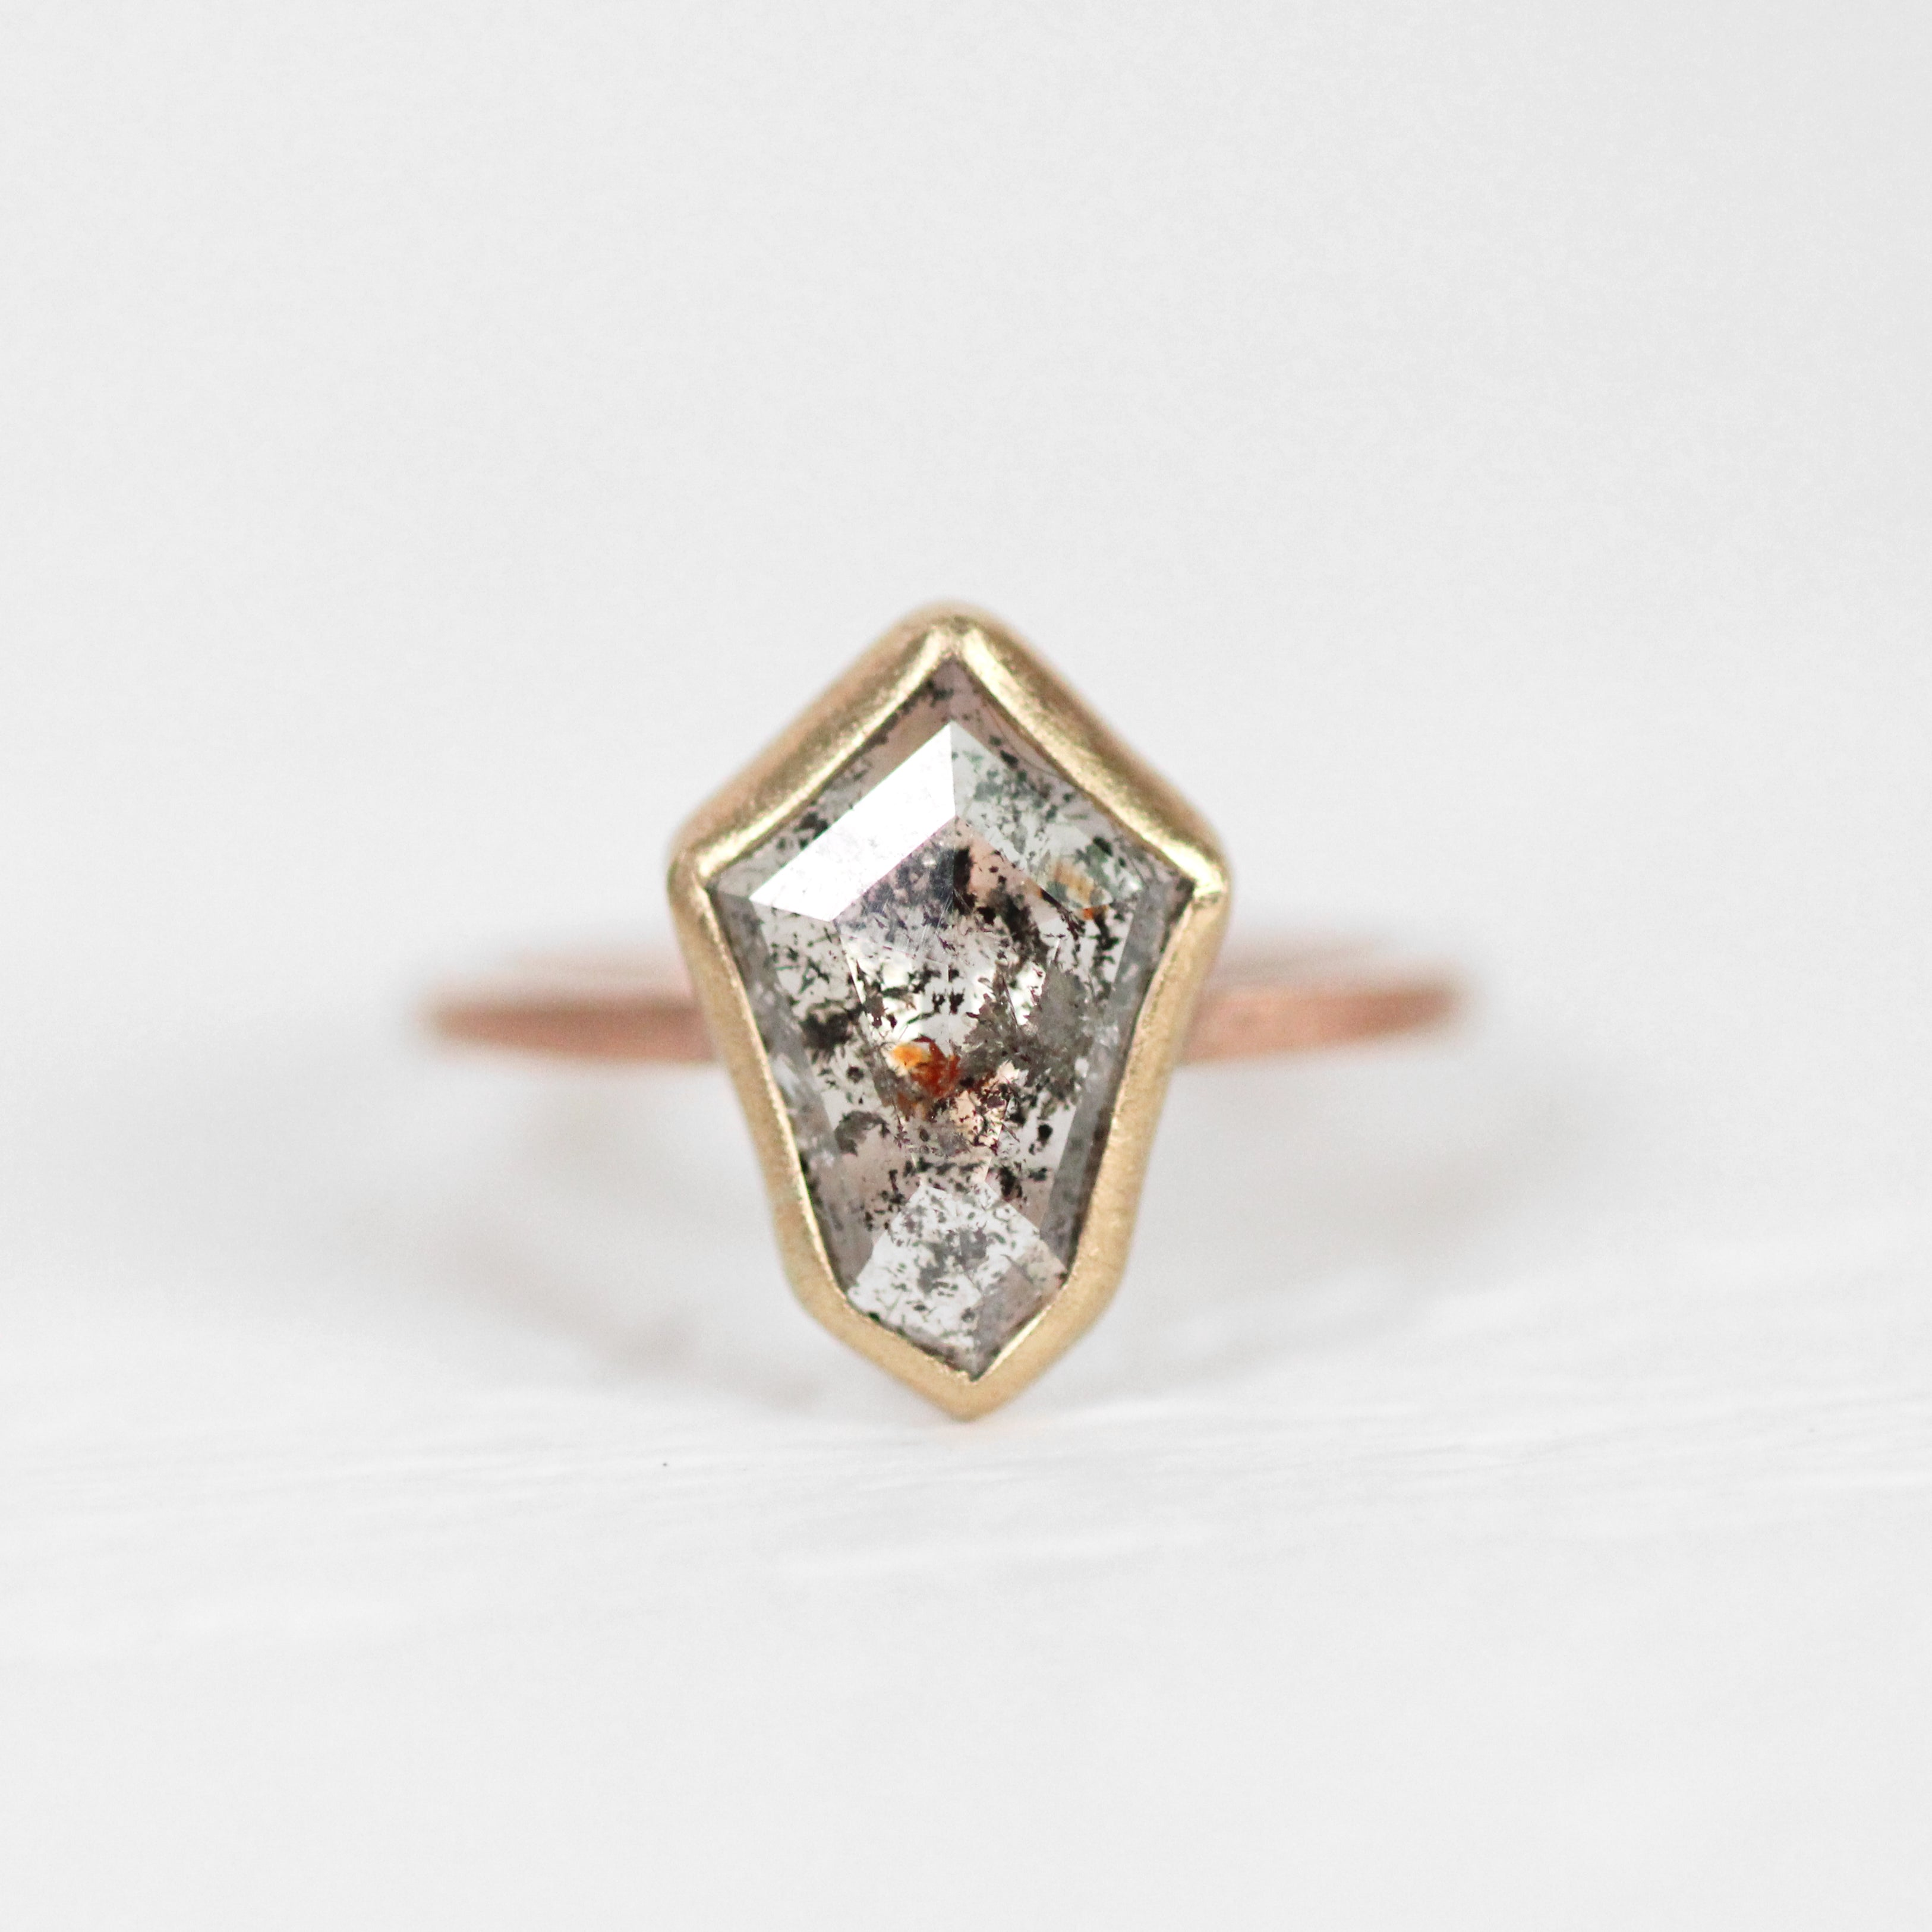 Shield Celestial Diamond in a Bezel Set Ring in rose and yellow gold - Ready to Size and Ship - Celestial Diamonds ® by Midwinter Co.